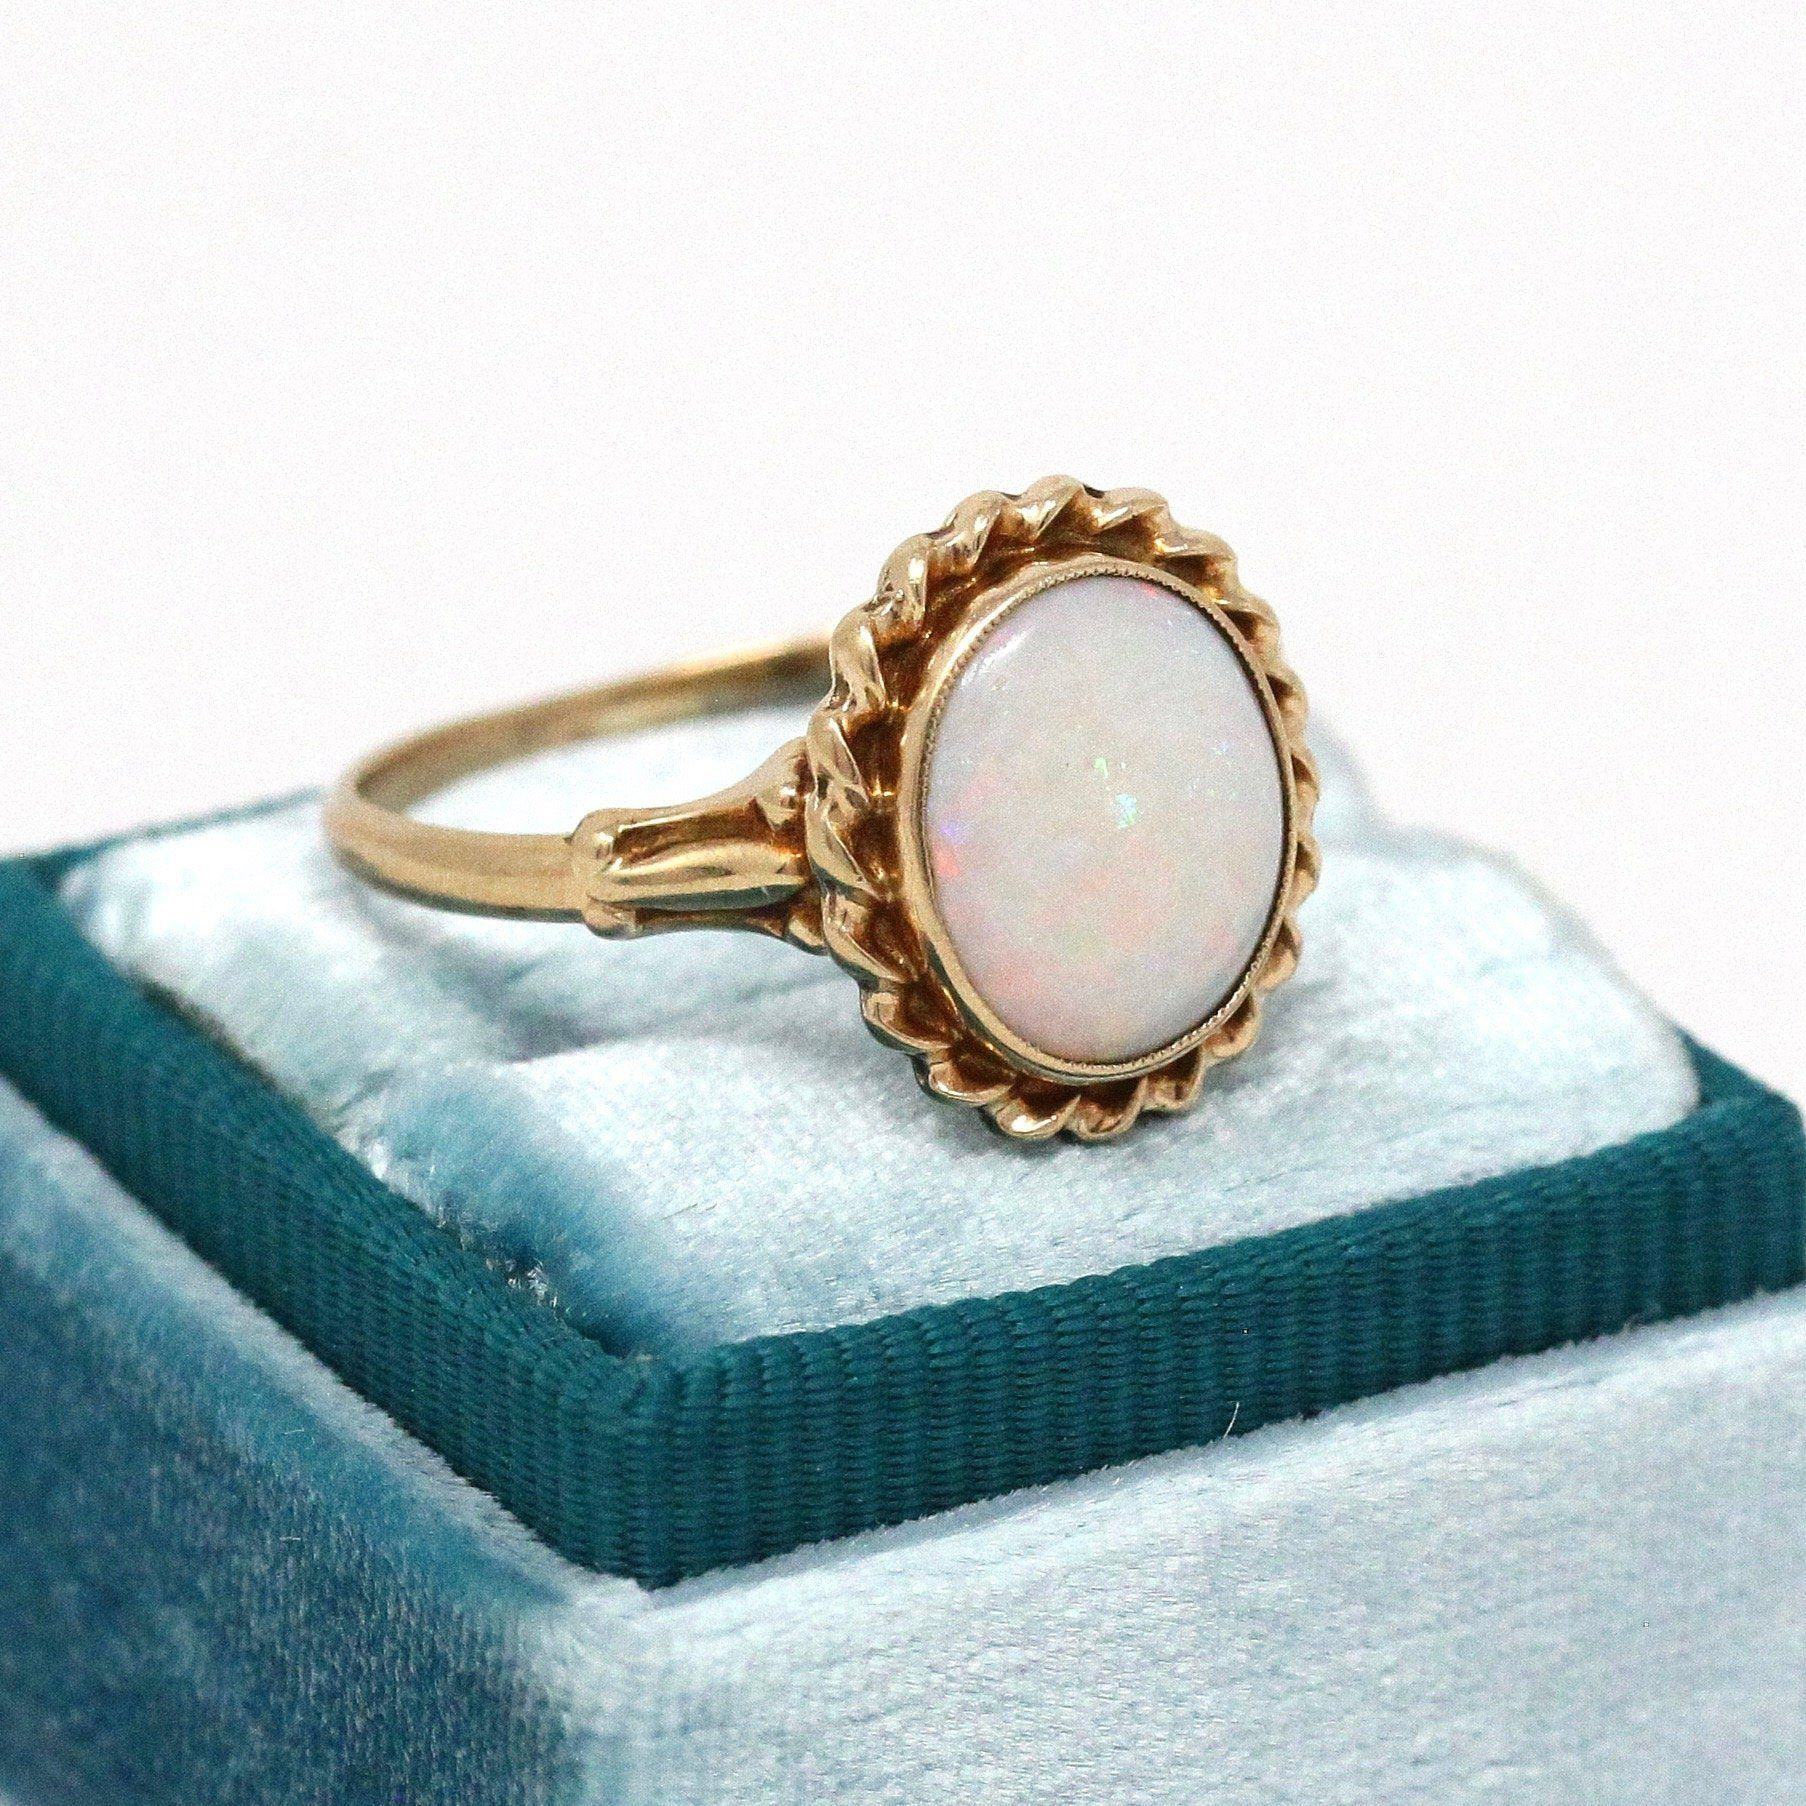 Beautiful Vintage 1940s Retro Era 10k Yellow Gold Genuine Opal Ring This Fabulous Statement Ring Contains A Genuine O Antique Jewelry Opal Rings Vintage Rings